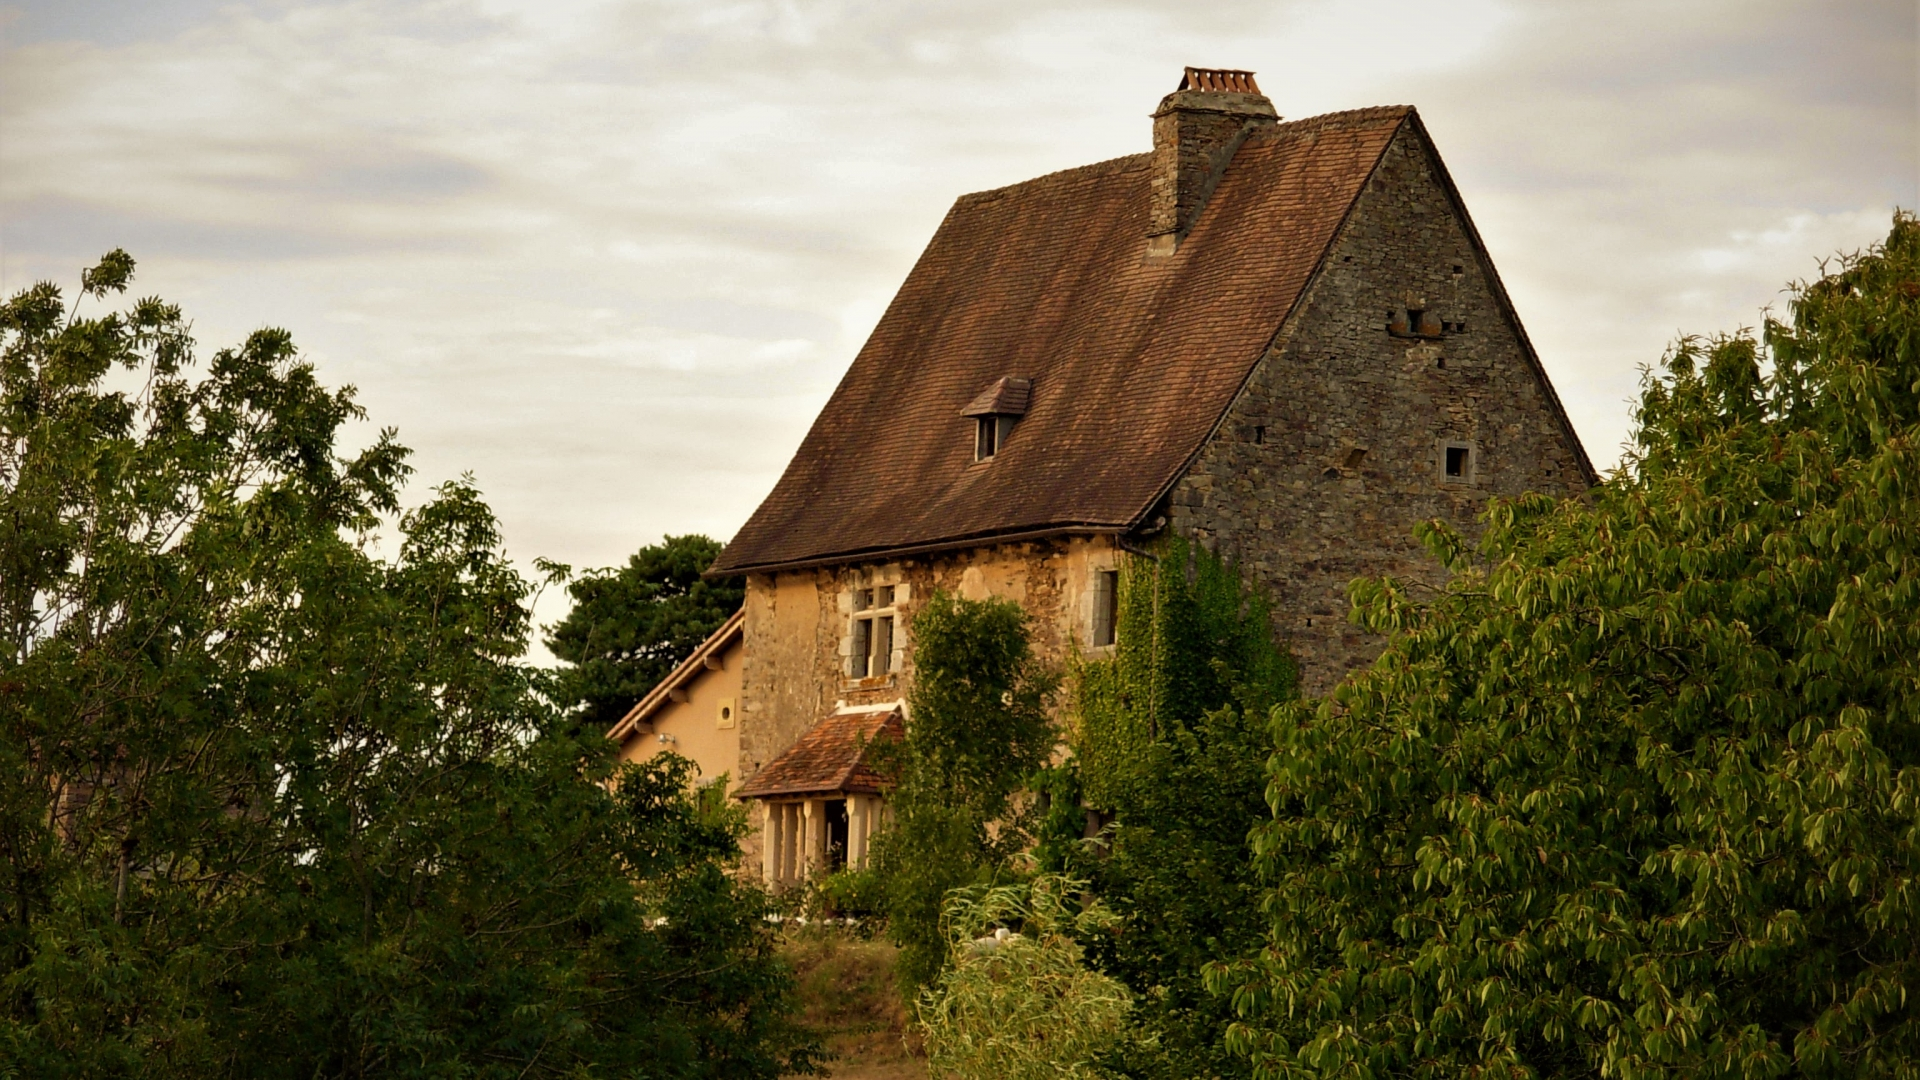 Knights Templar Commanderie in St. Paul La Roche, Dordogne, Aquitaine. ASKING PRICE: €392,200 ($464,850). TEMPLAR CONNECTION: Built during the 12th century, this was once part of one of the most important Knights Templar commanderies in the Périgord. SELLING POINTS NOW: Front guard room features original exposed wooden beams, a 12th-century monumental stone fireplace and floor made of riverbed stones; pigeon loft in one of the three bedrooms.  (Photo courtesy of Leggett Immobilier)